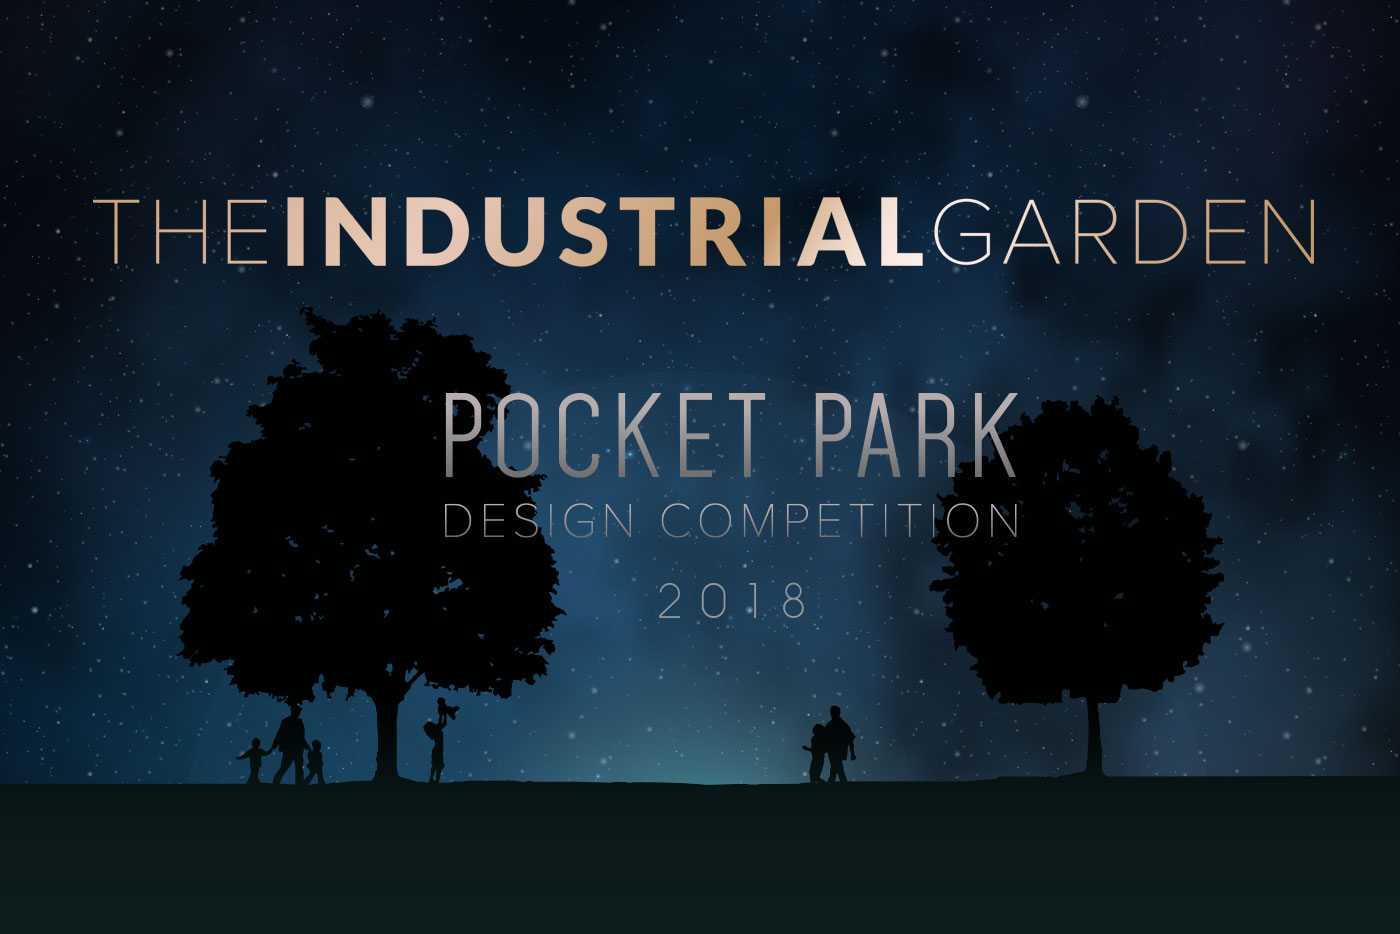 The Industrial GardenPocket Park Design Competition